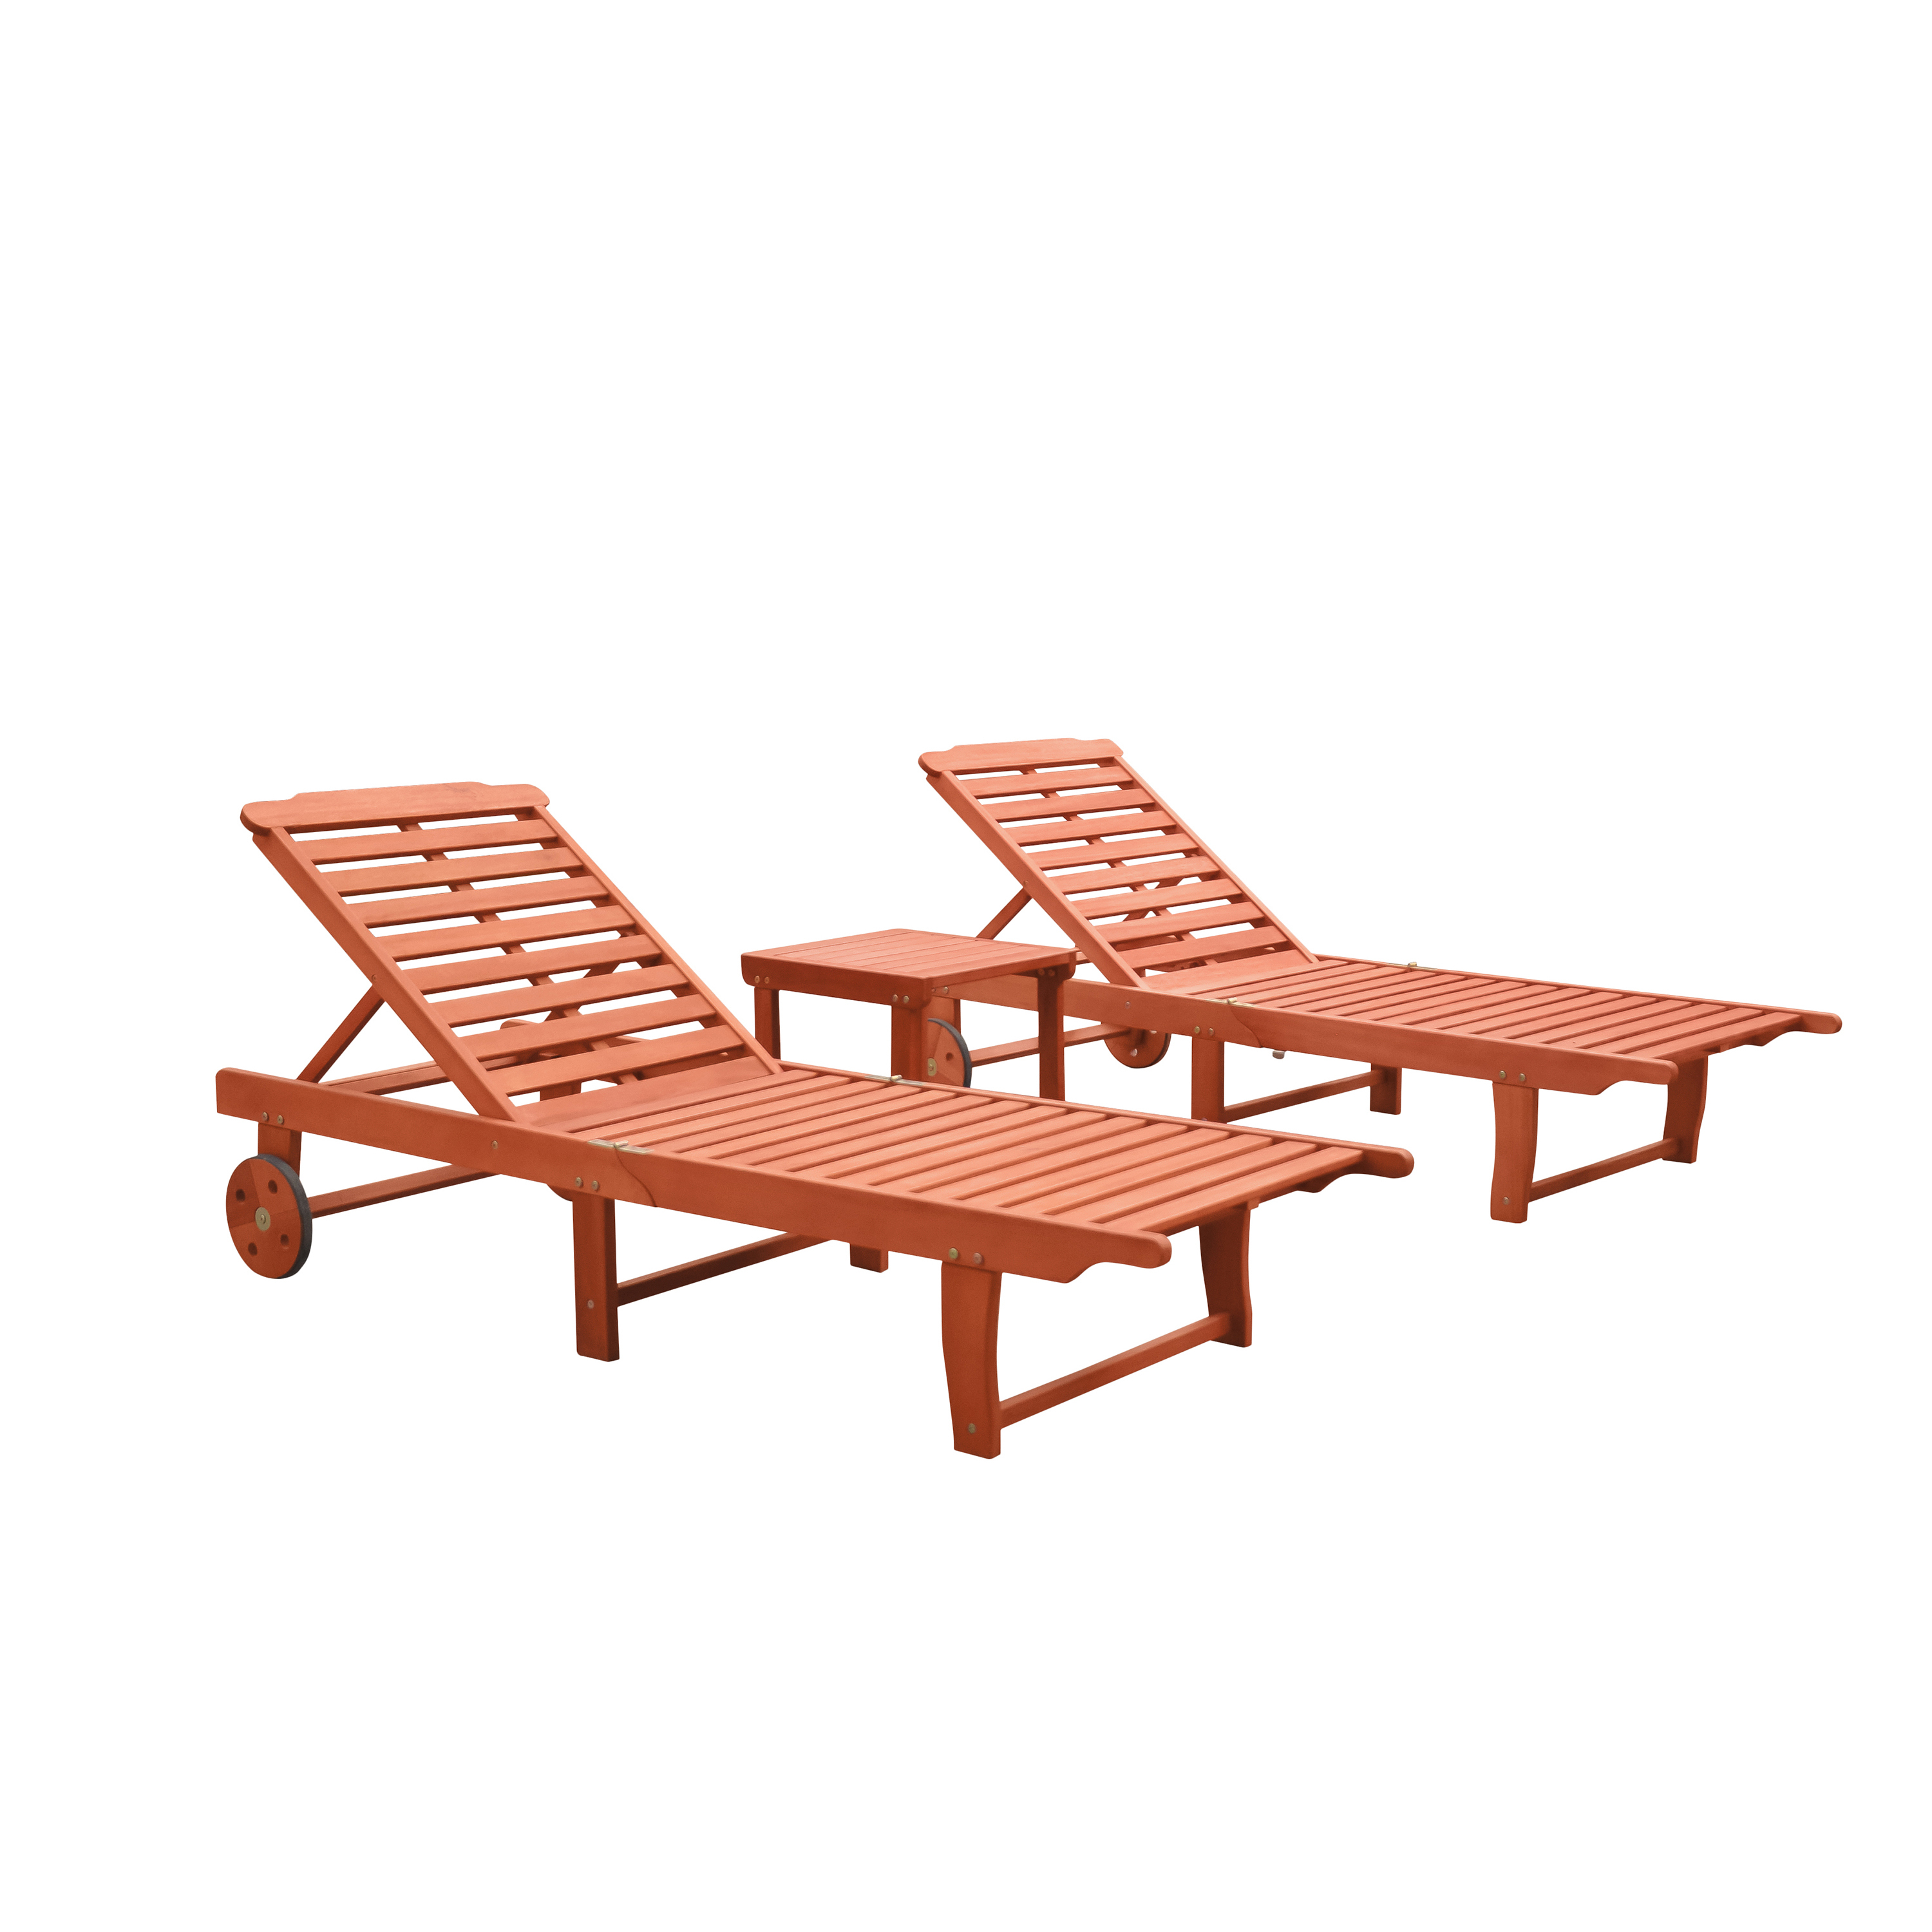 Outdoor 3 Piece Acacia Wood Chaise Lounge Sets For Current Malibu Outdoor Patio Wood 3 Piece Beach & Pool Lounge Set (Gallery 21 of 25)